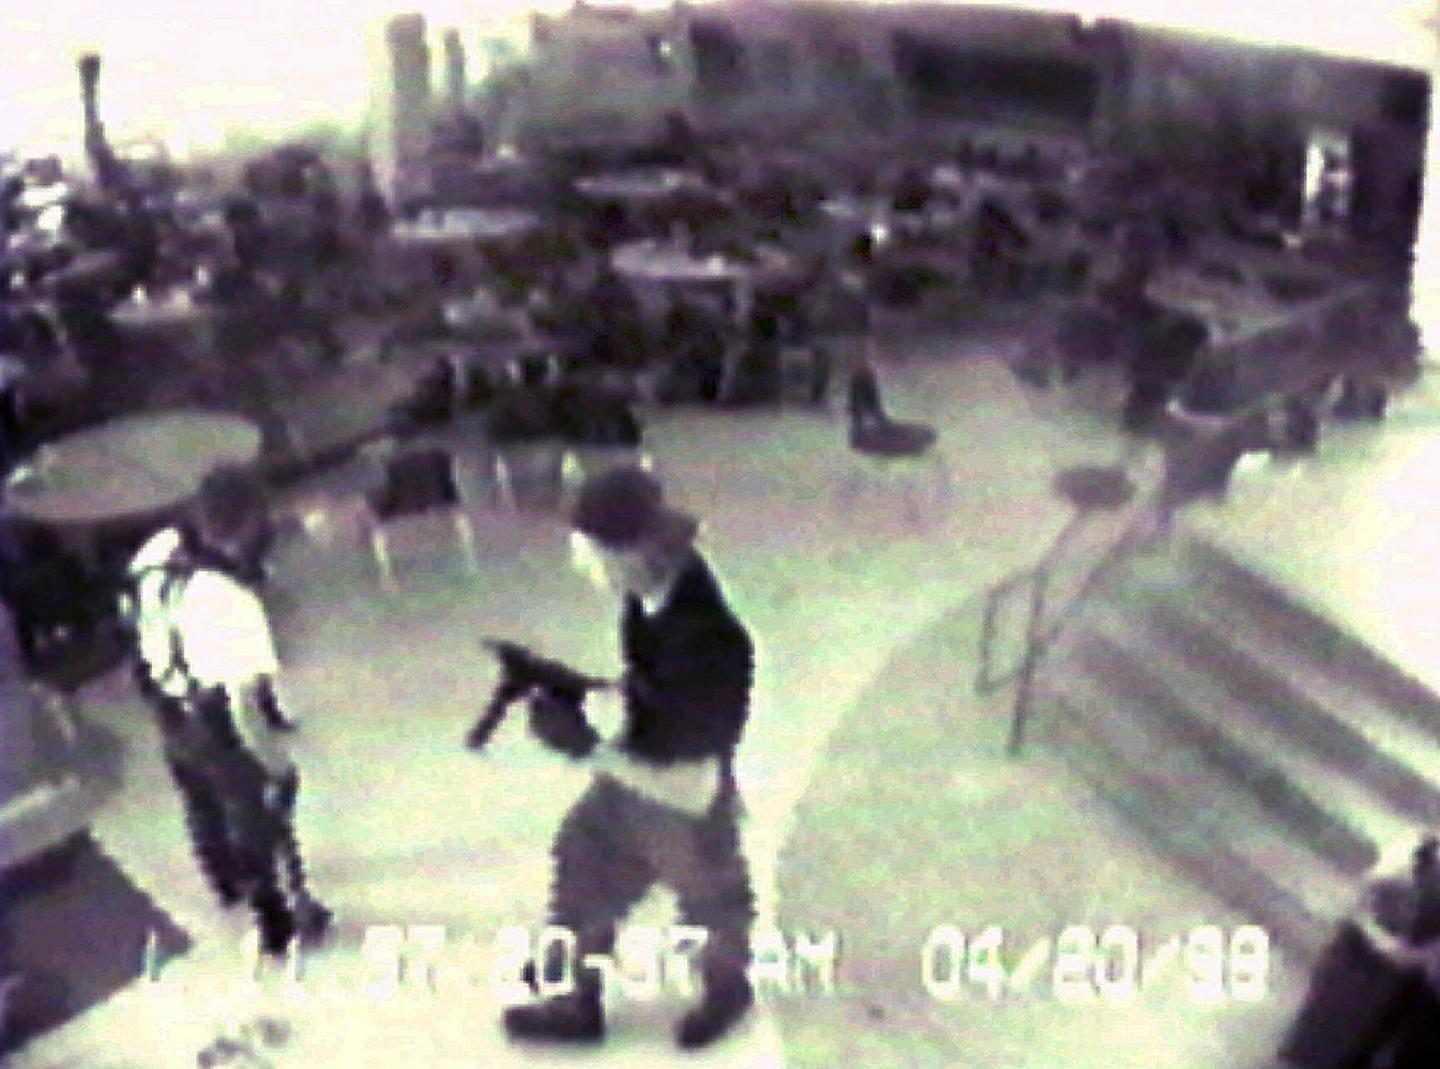 Columbine School Shooting | Video | RealClearHistory